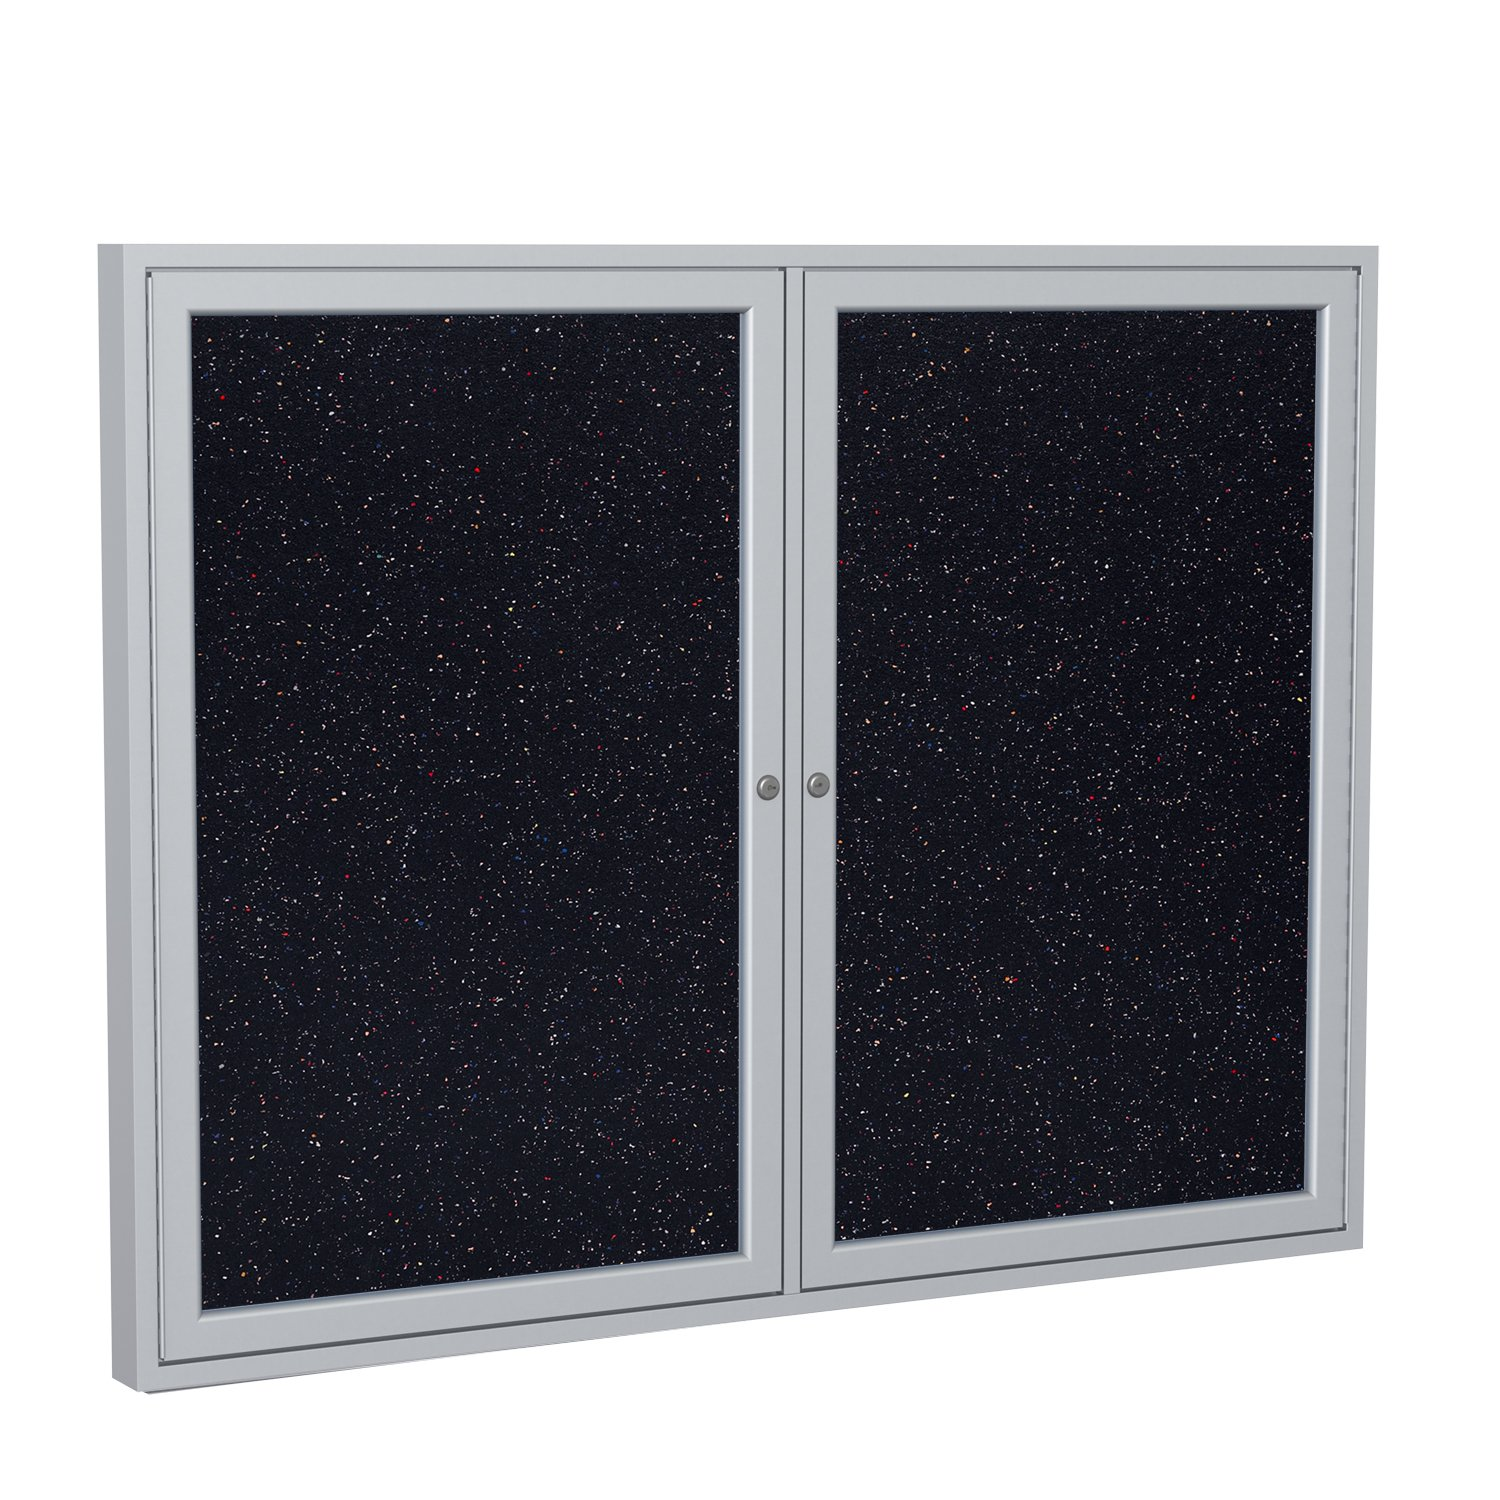 Ghent 36''x48'' 2-Door indoor Enclosed Recycled Rubber Bulletin Board, Shatter Resistant, with Lock, Satin Aluminum Frame, Confetti (PA23648TR-CF) ,Made in the USA